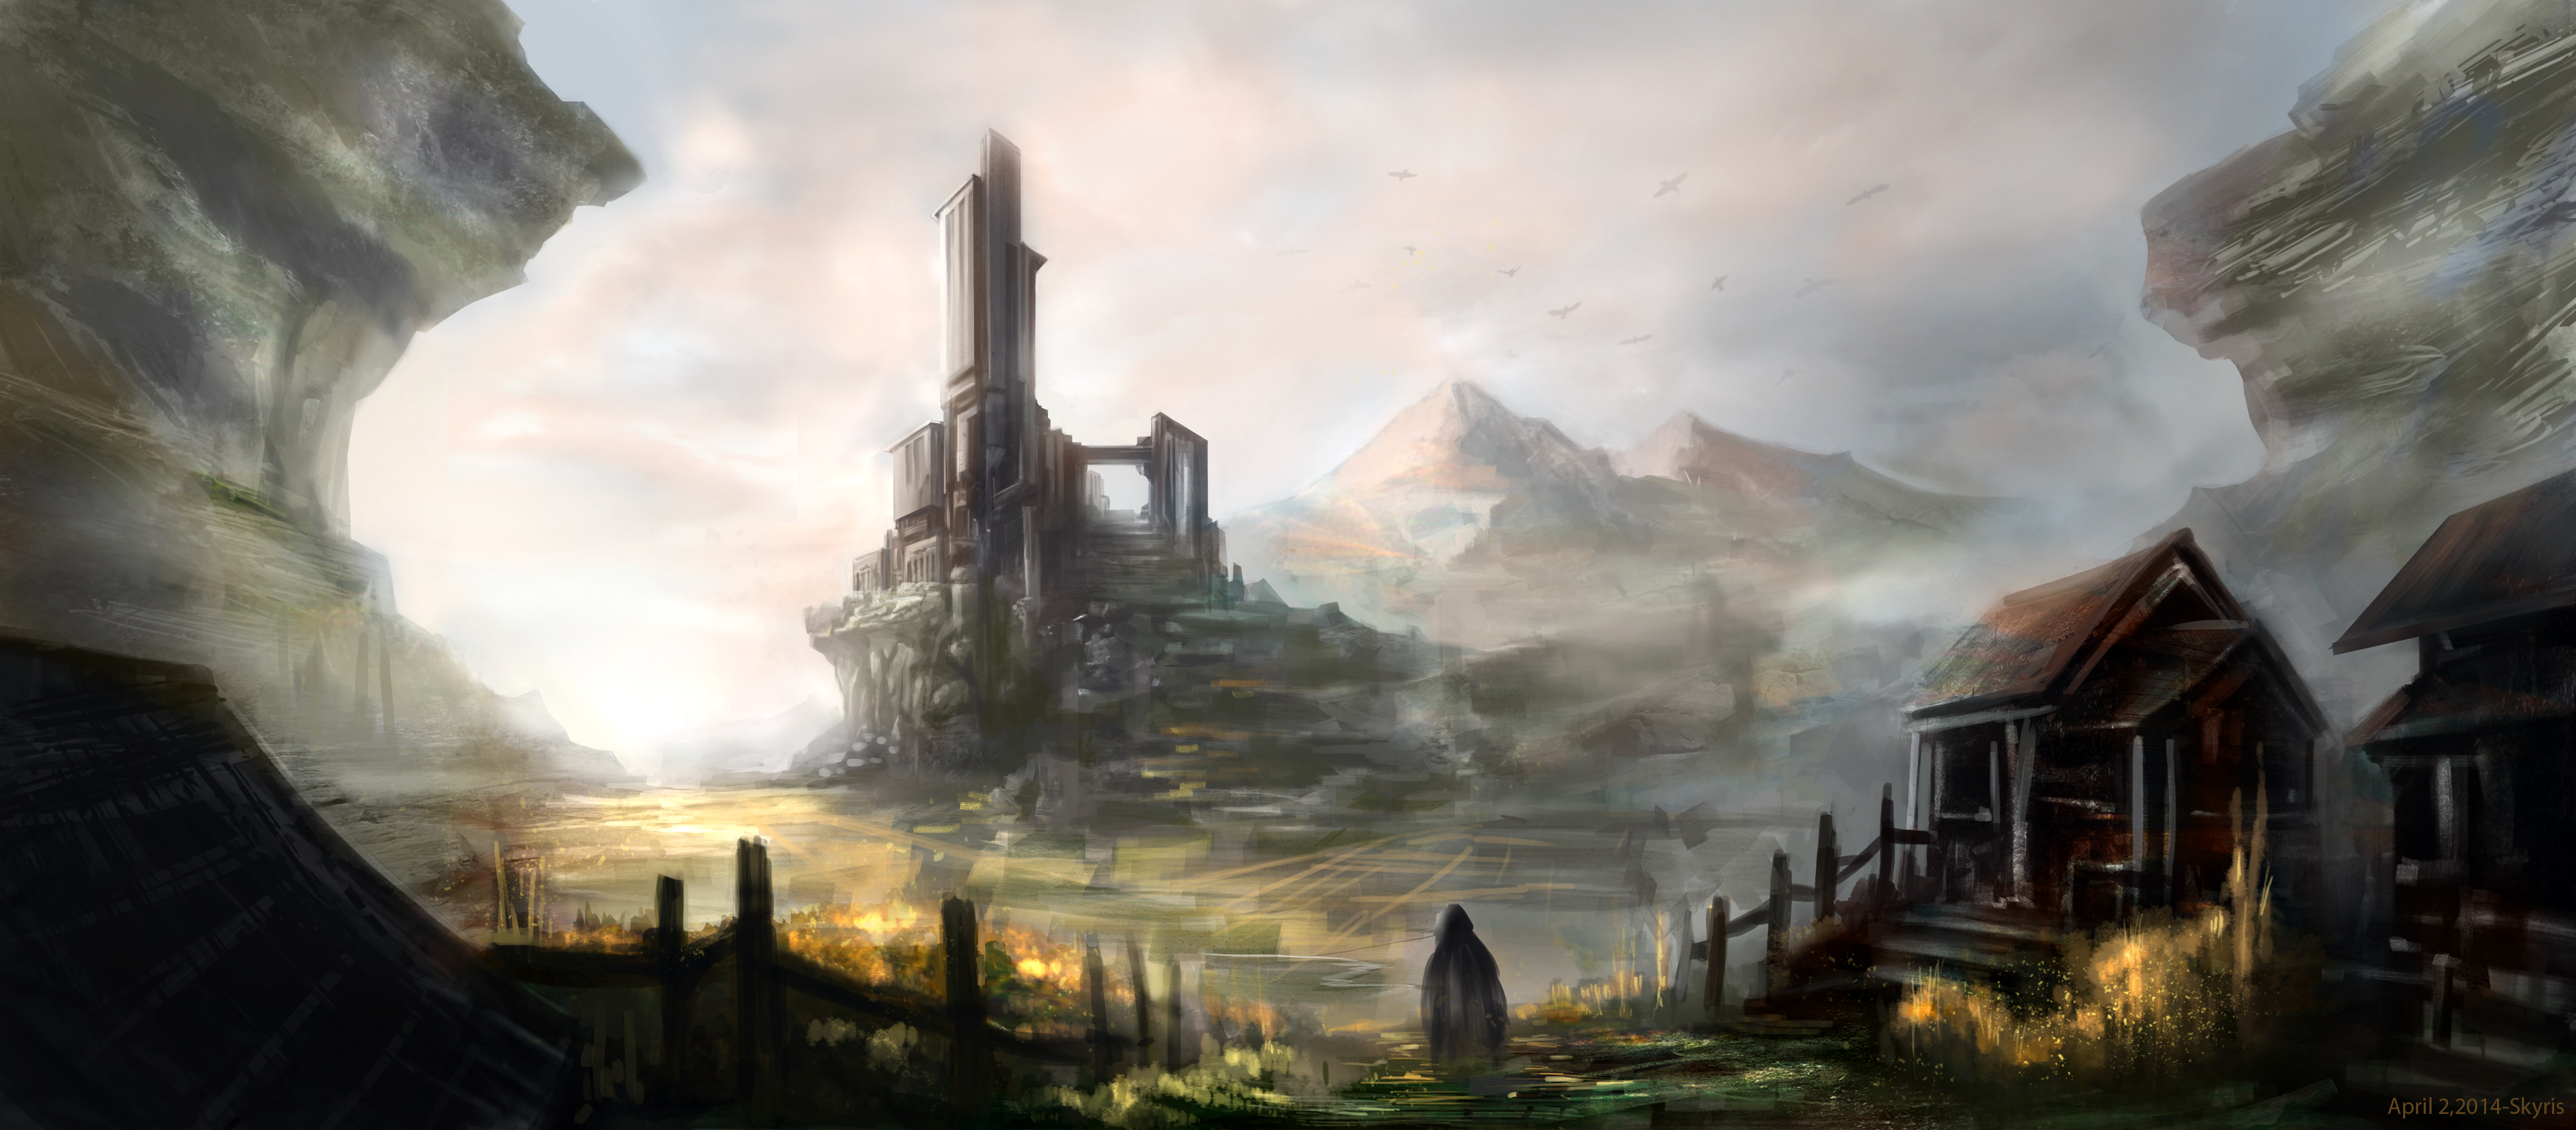 Chapter 1: Tower of Ambagis